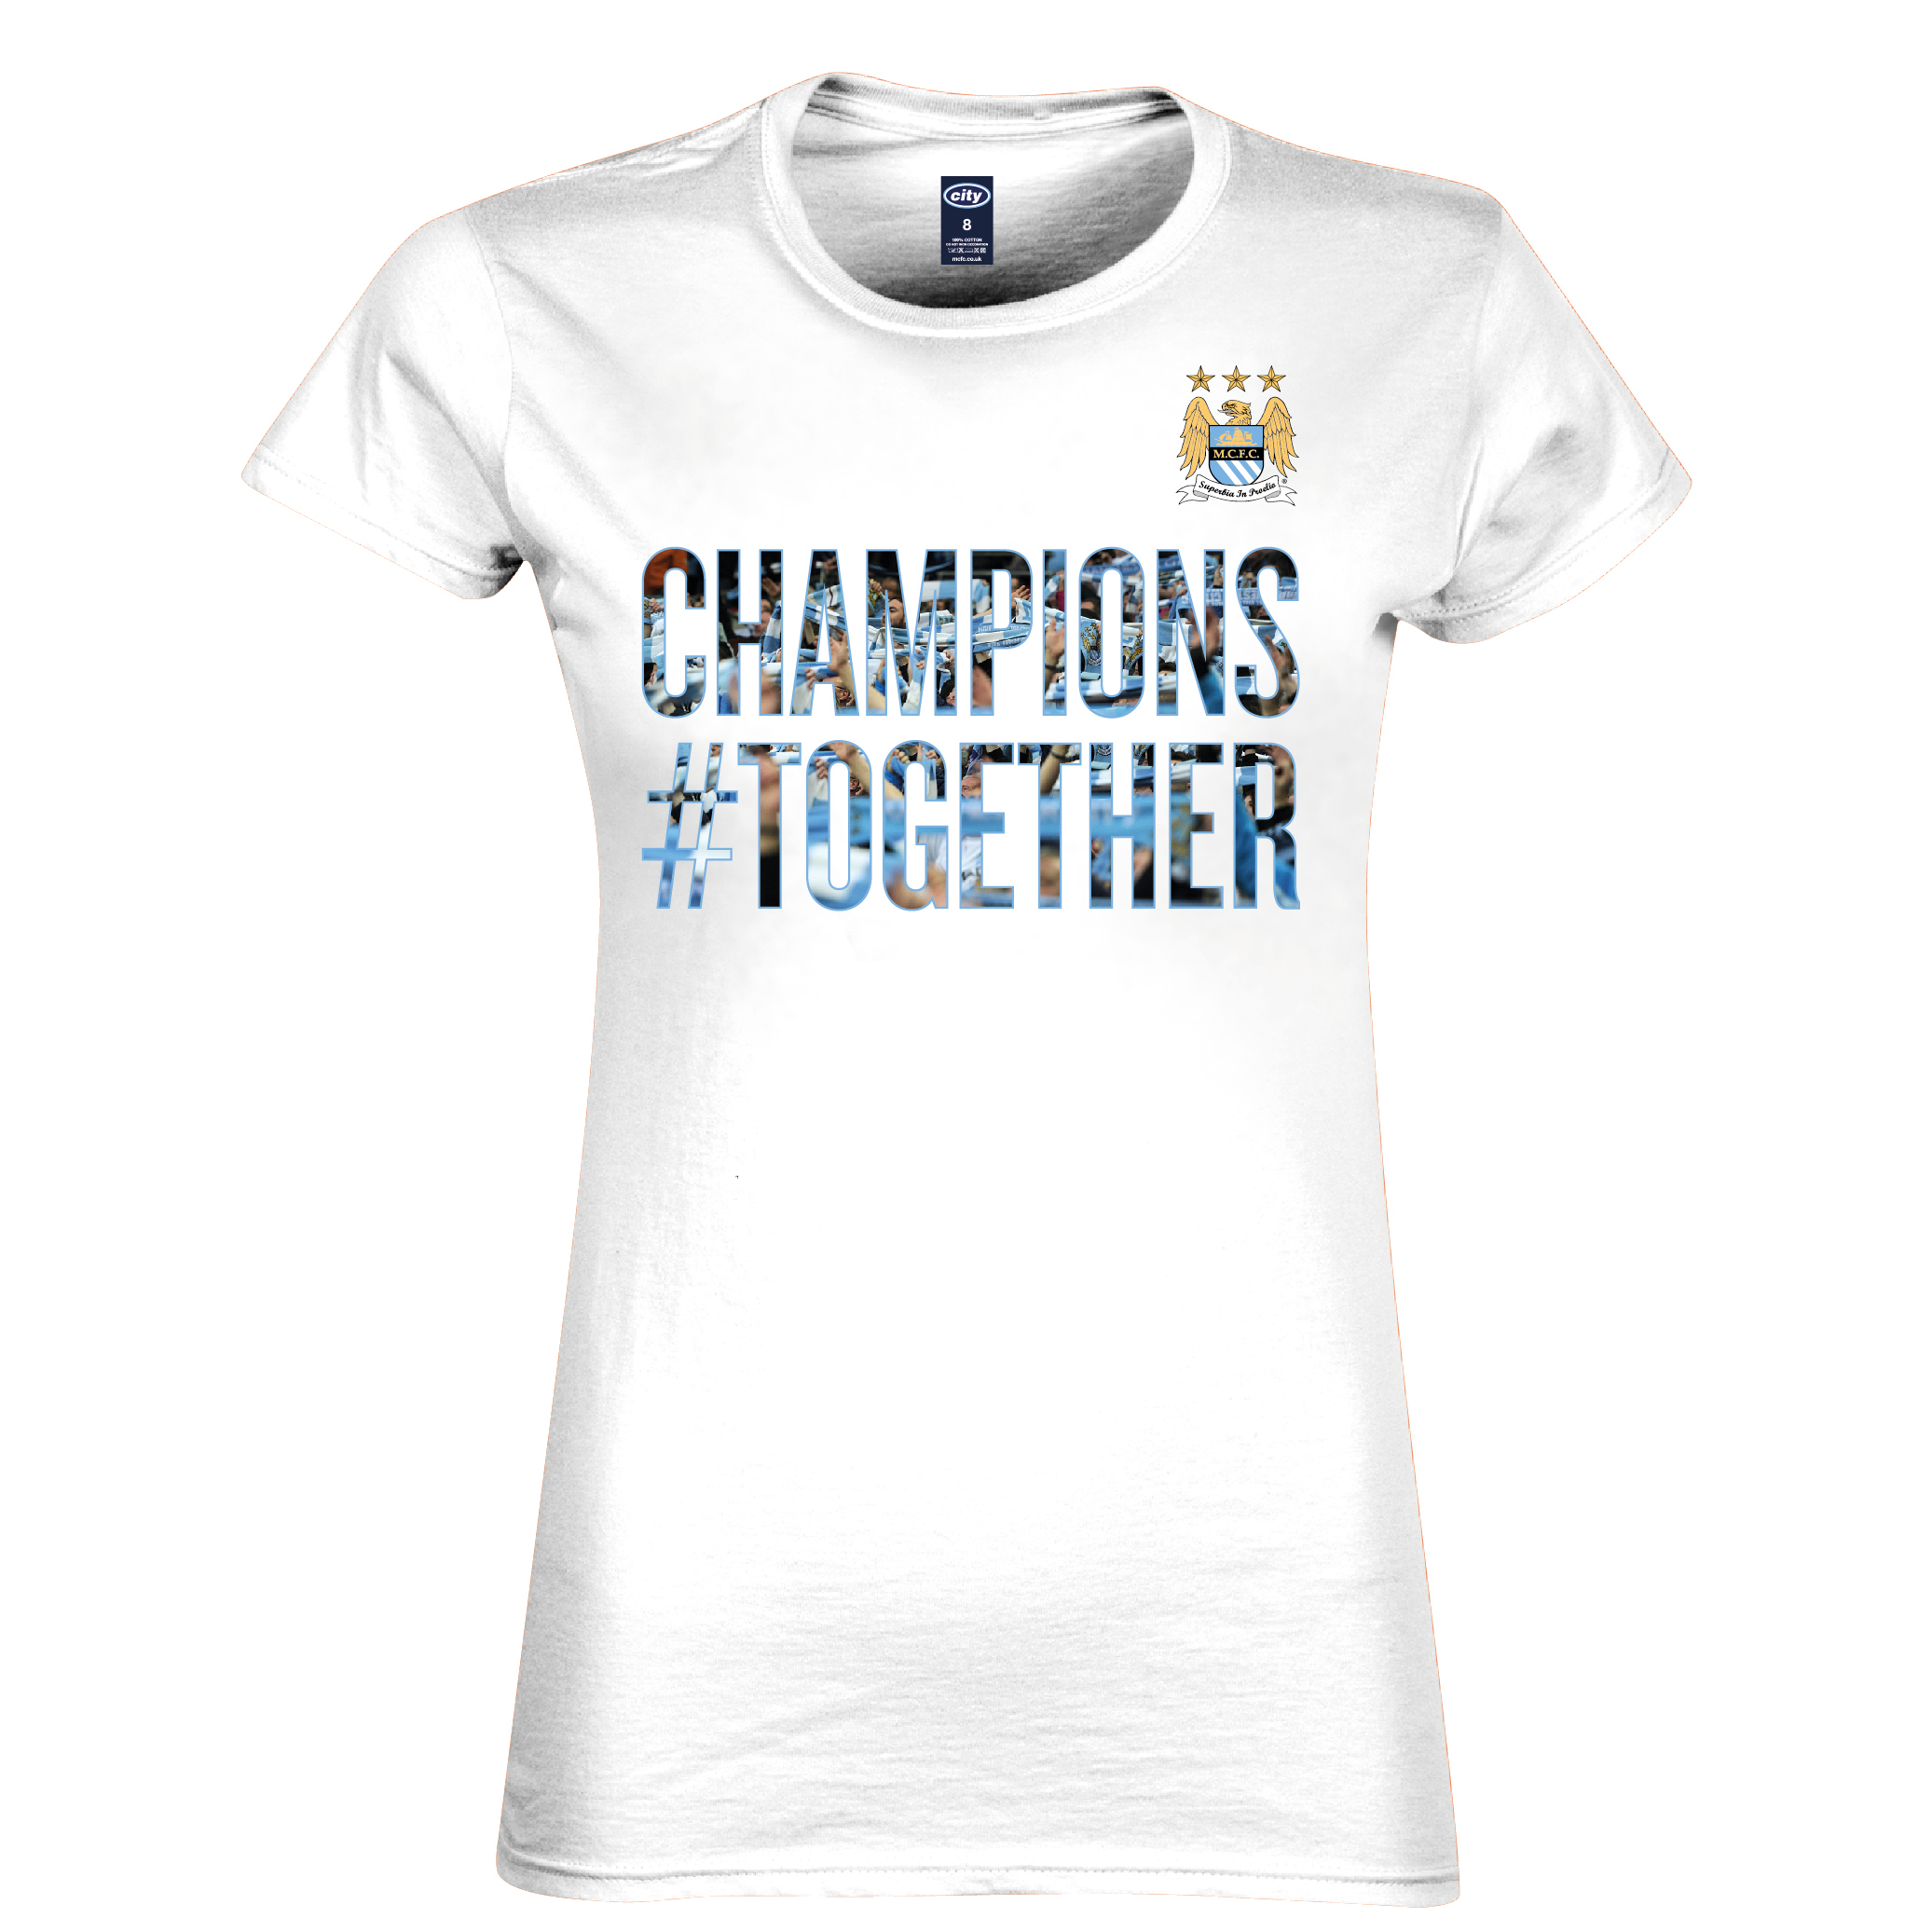 Manchester City 2013/14 Premier league Winners T-Shirt - White- Womens